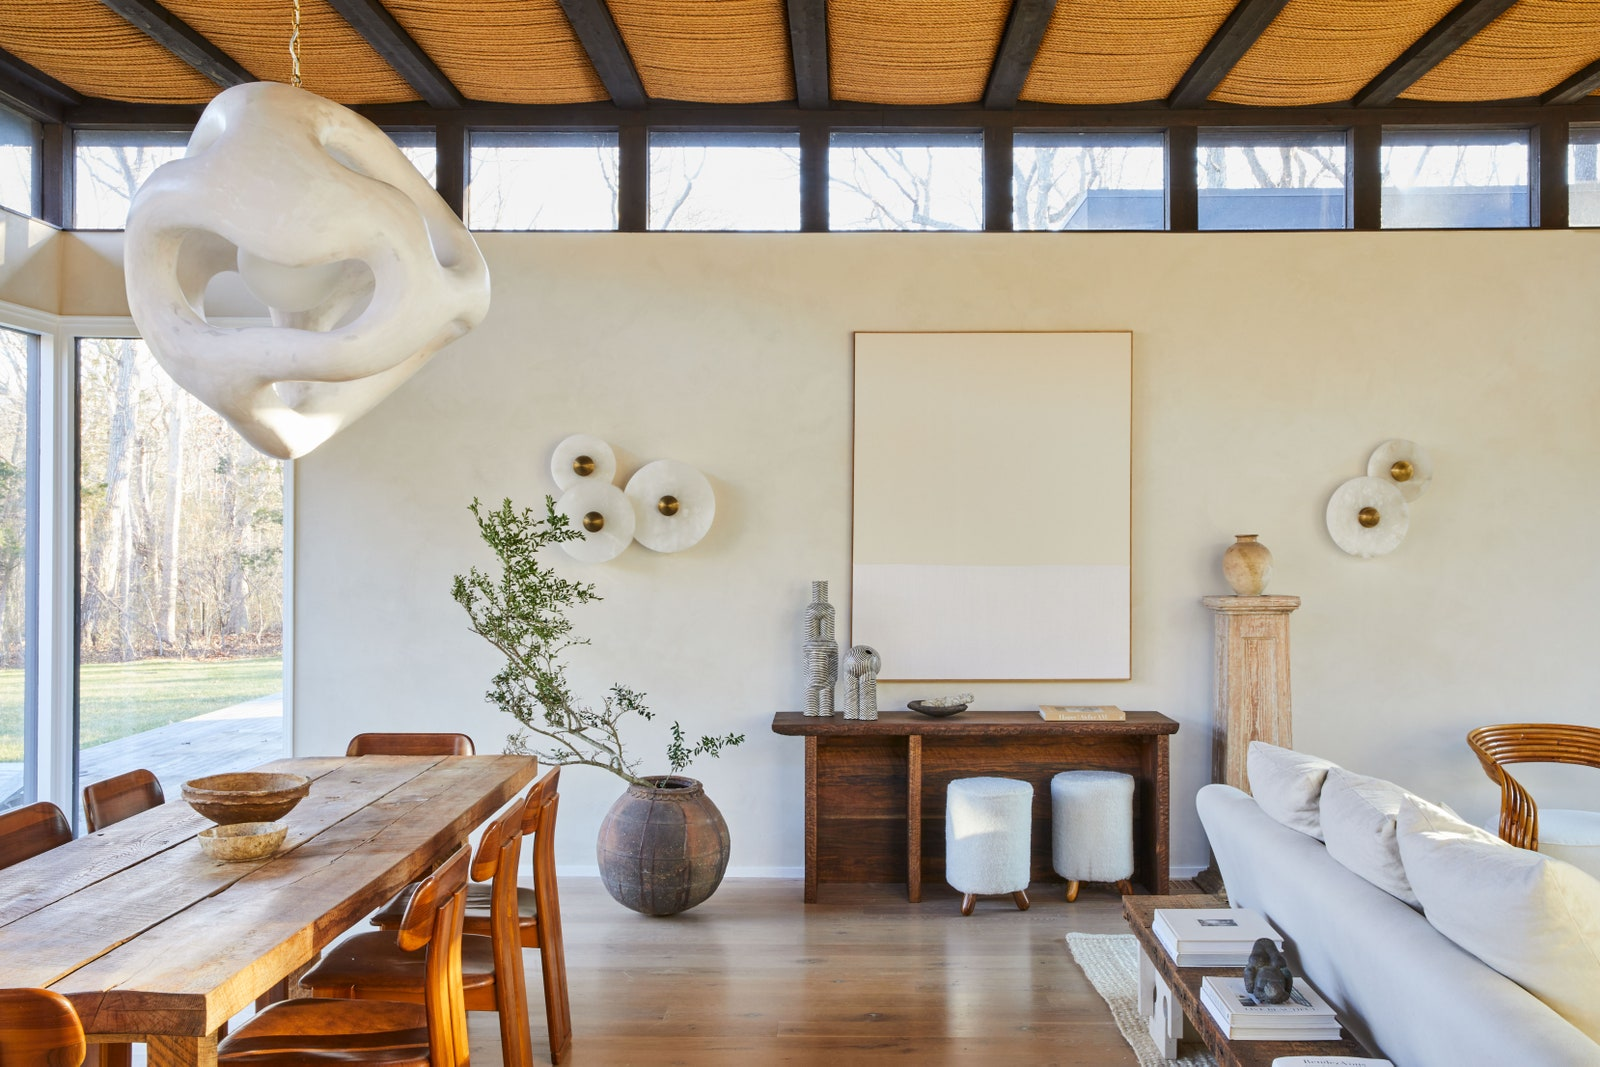 Amagansett dining room of Athena Calderone